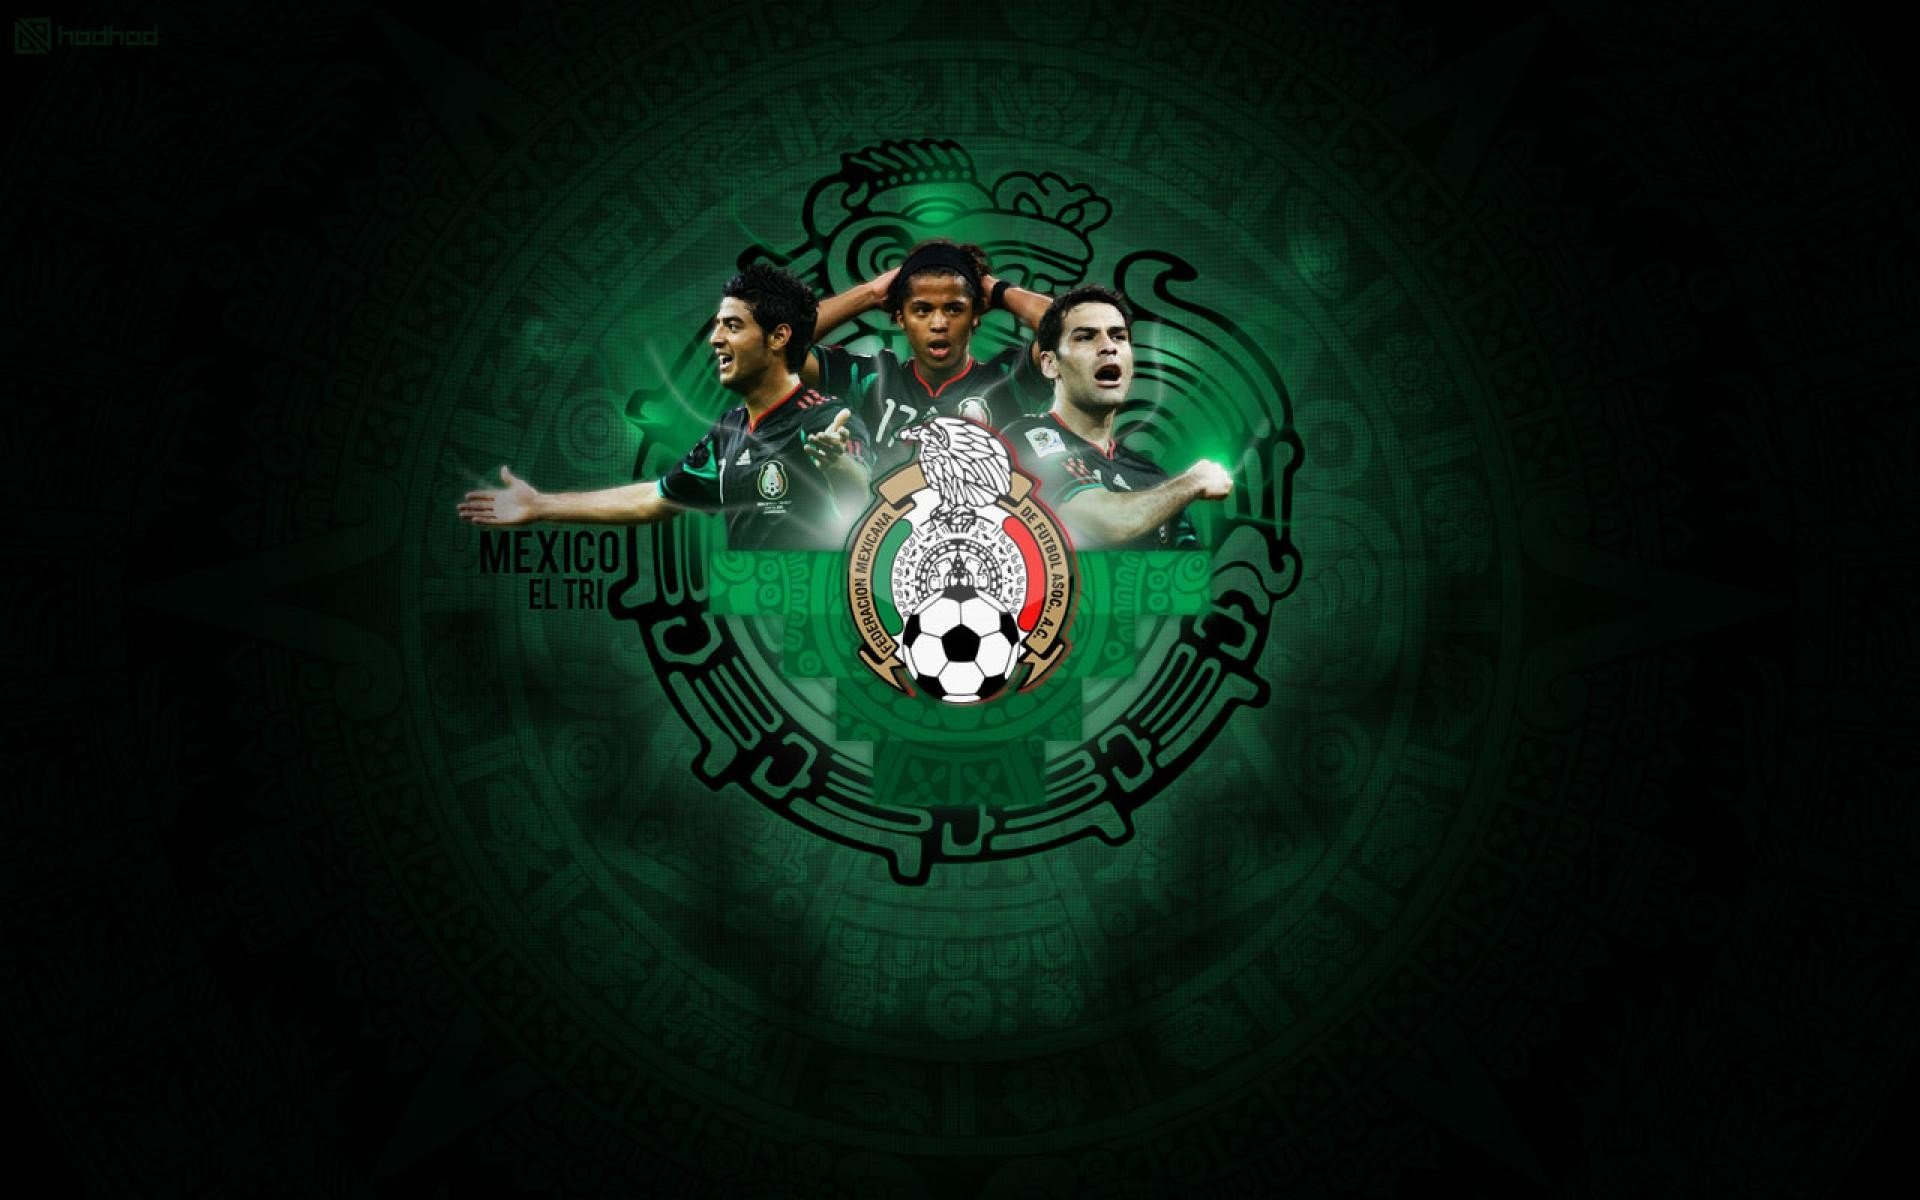 Mexico El Tri World Cup 2014 Exclusive HD Wallpapers #6757